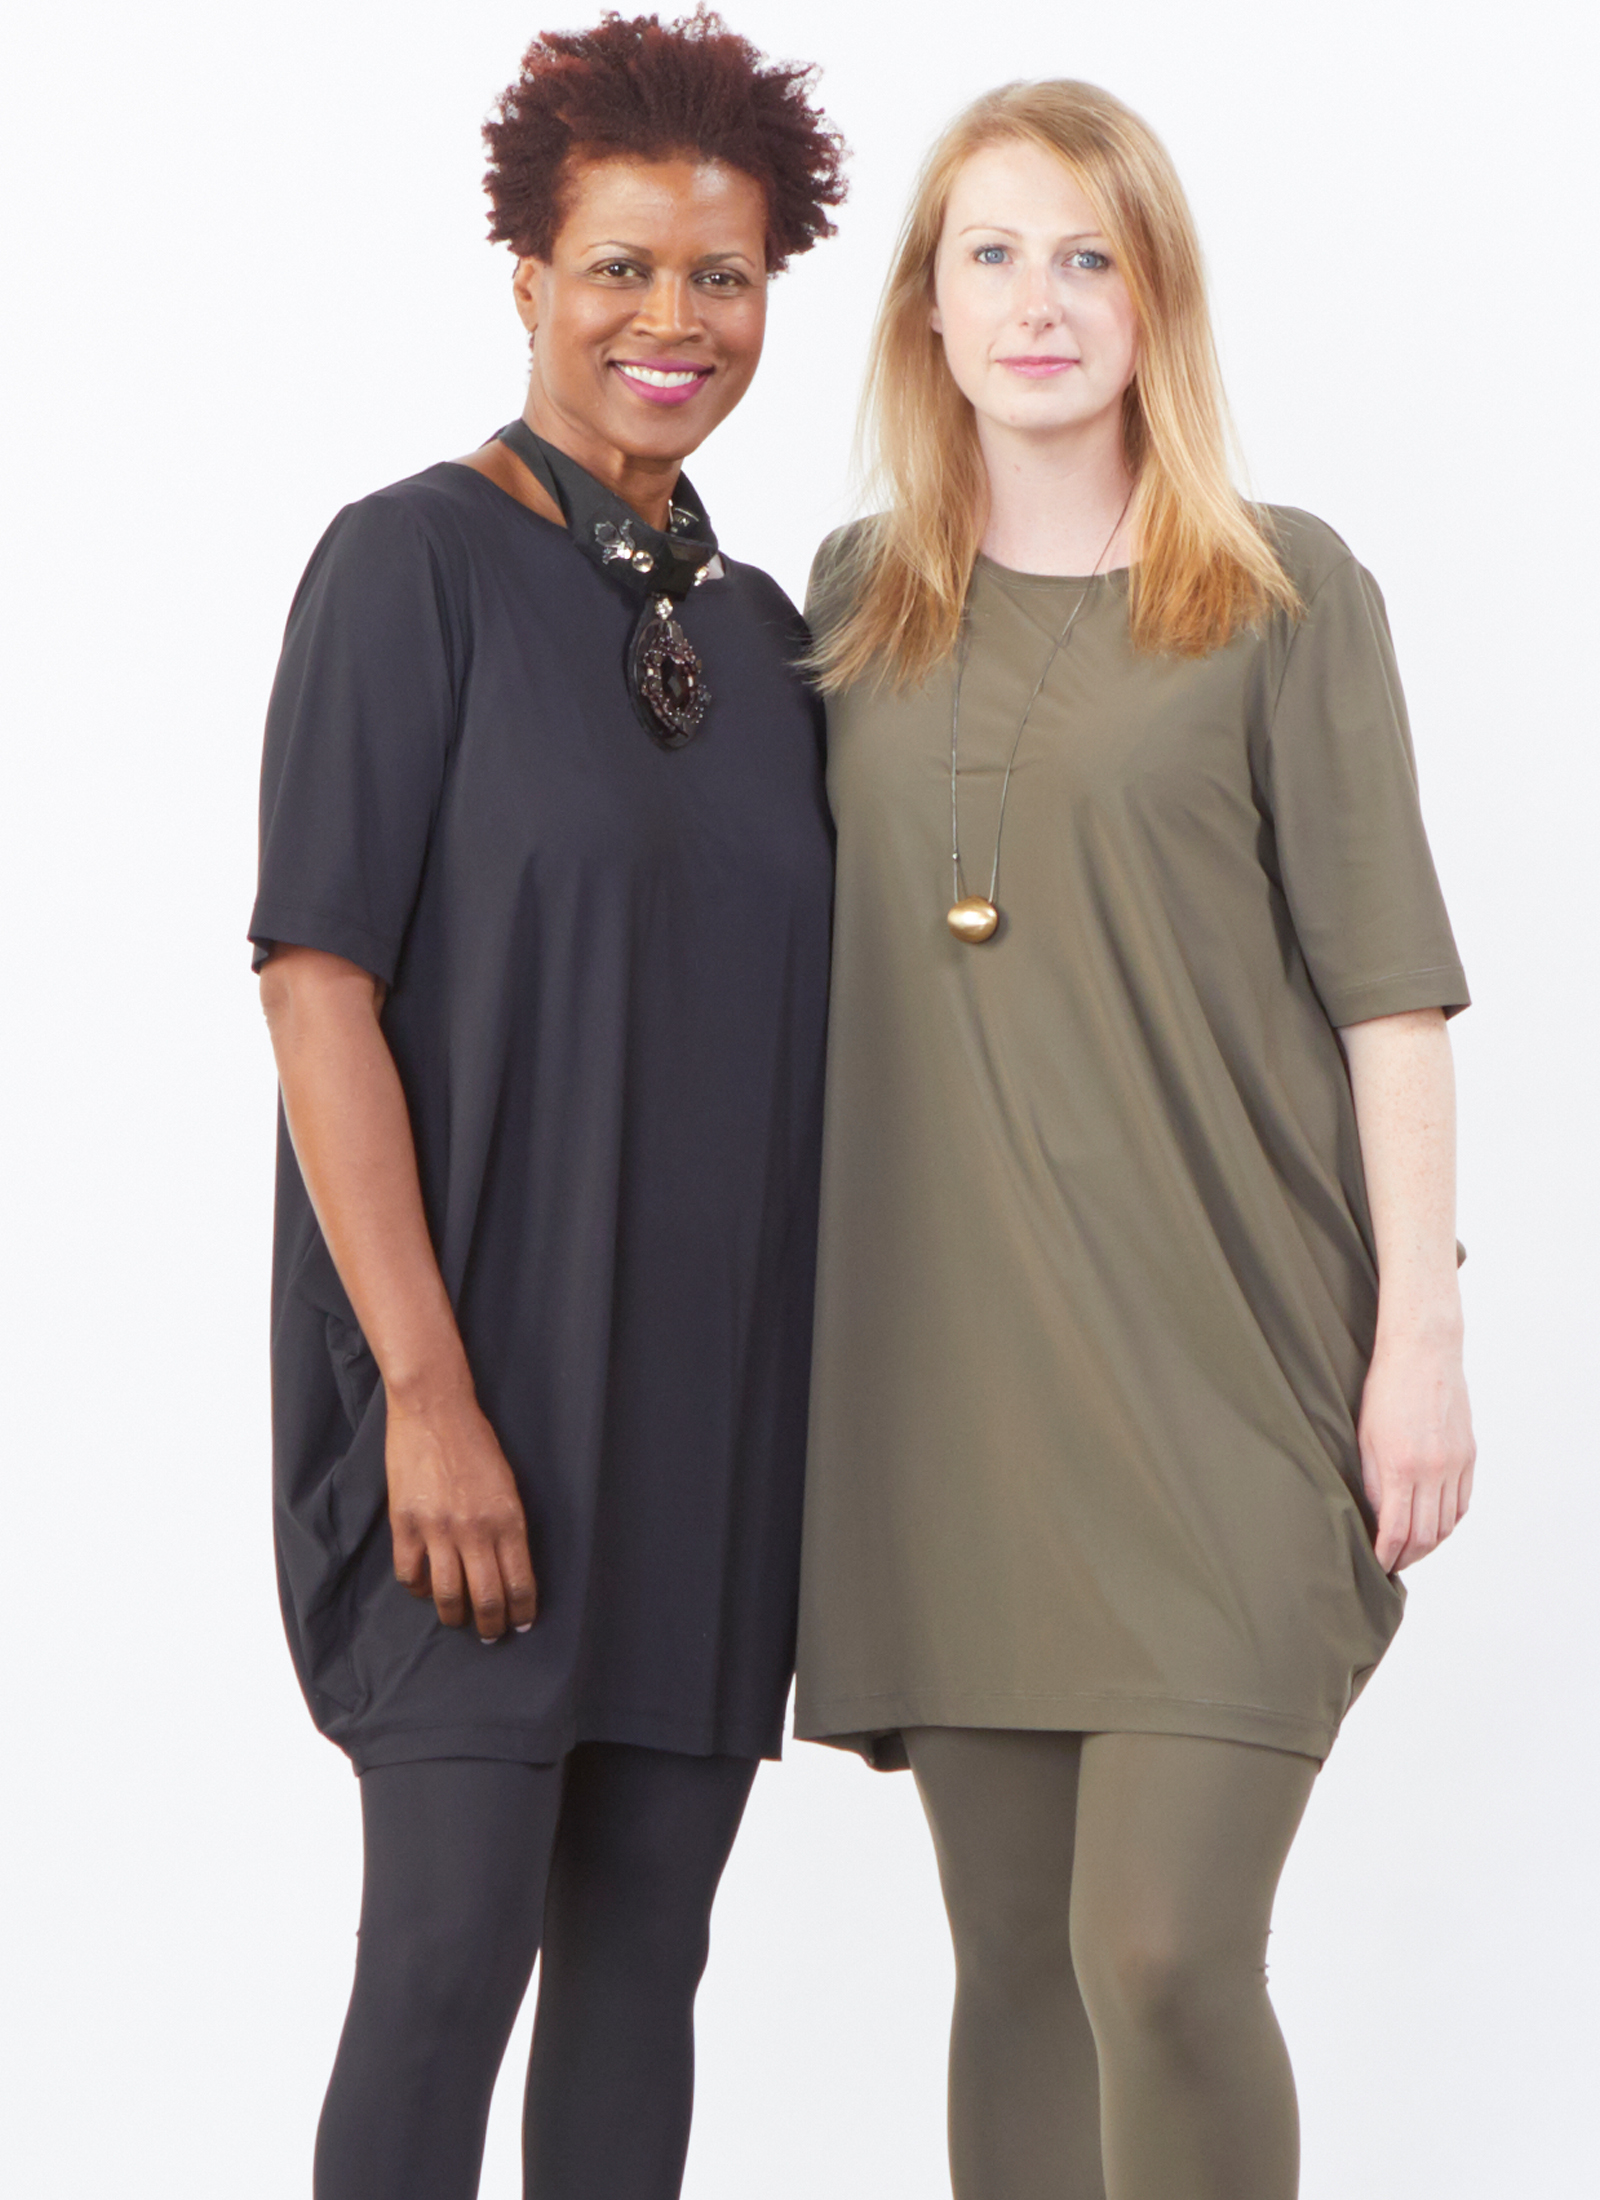 Conrad Tunic, Legging in Black and Olive Microfiber Jersey